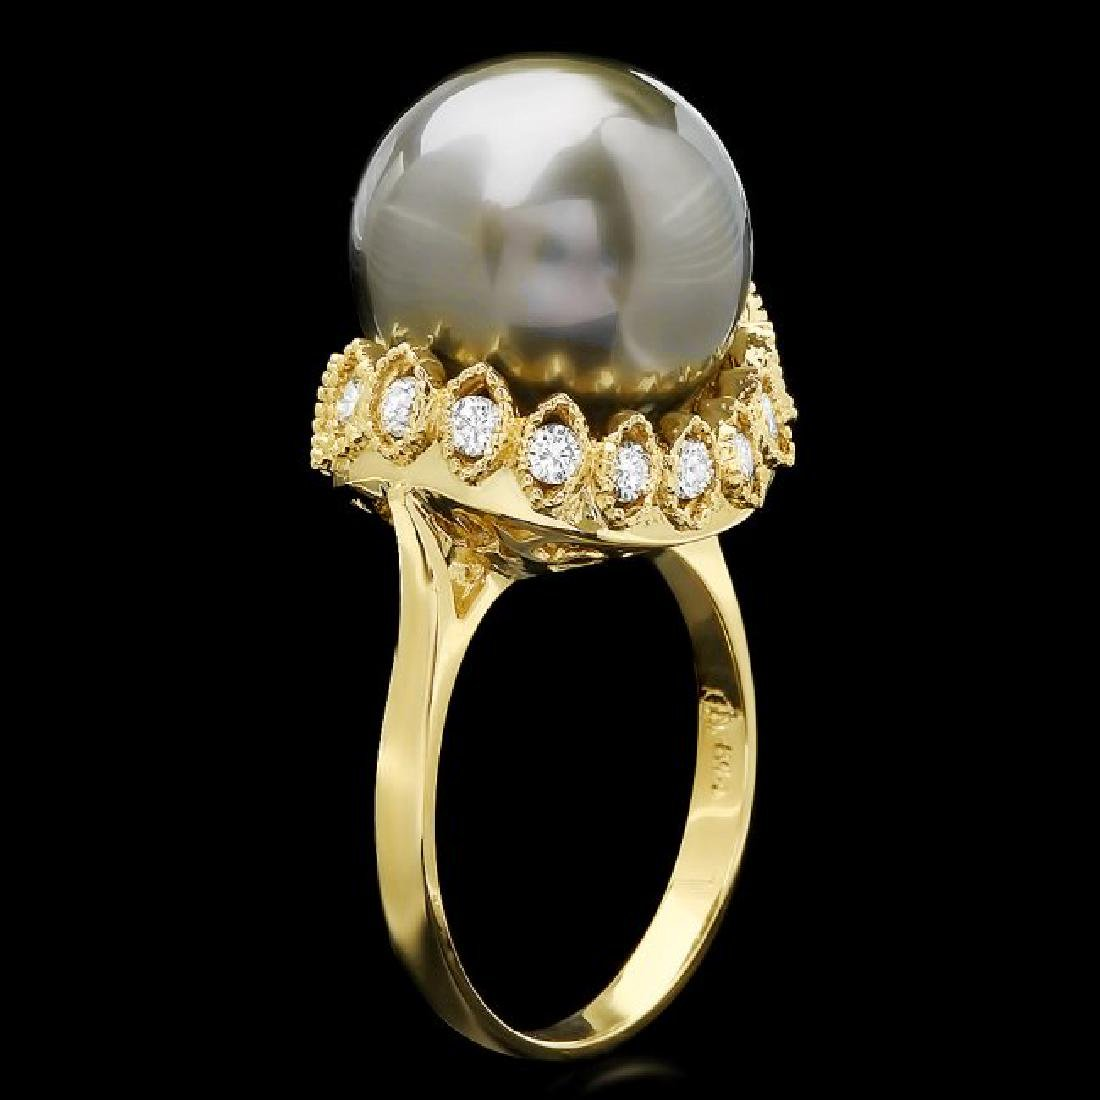 14k Gold 14 X 14mm Pearl 0.64ct Diamond Ring - 2